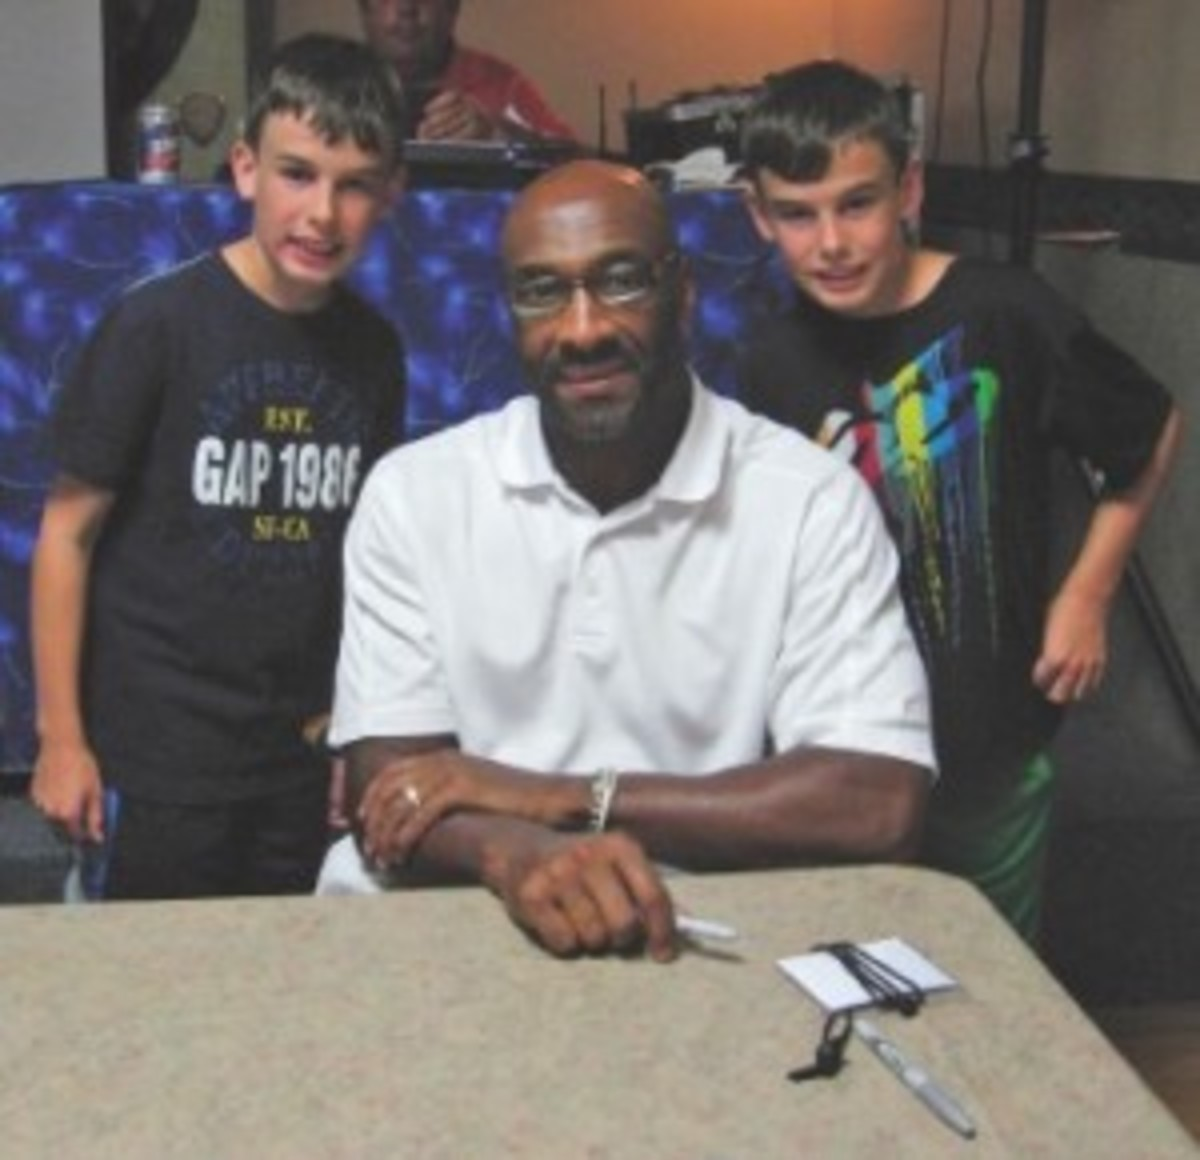 The author's sons, Dalton and Devon, pose with former wide receiver Irving Fryar. Players met in Penn Yan, N.Y., to help raise money for disadvantaged kids in an event headed up by former running back Tony Collins.